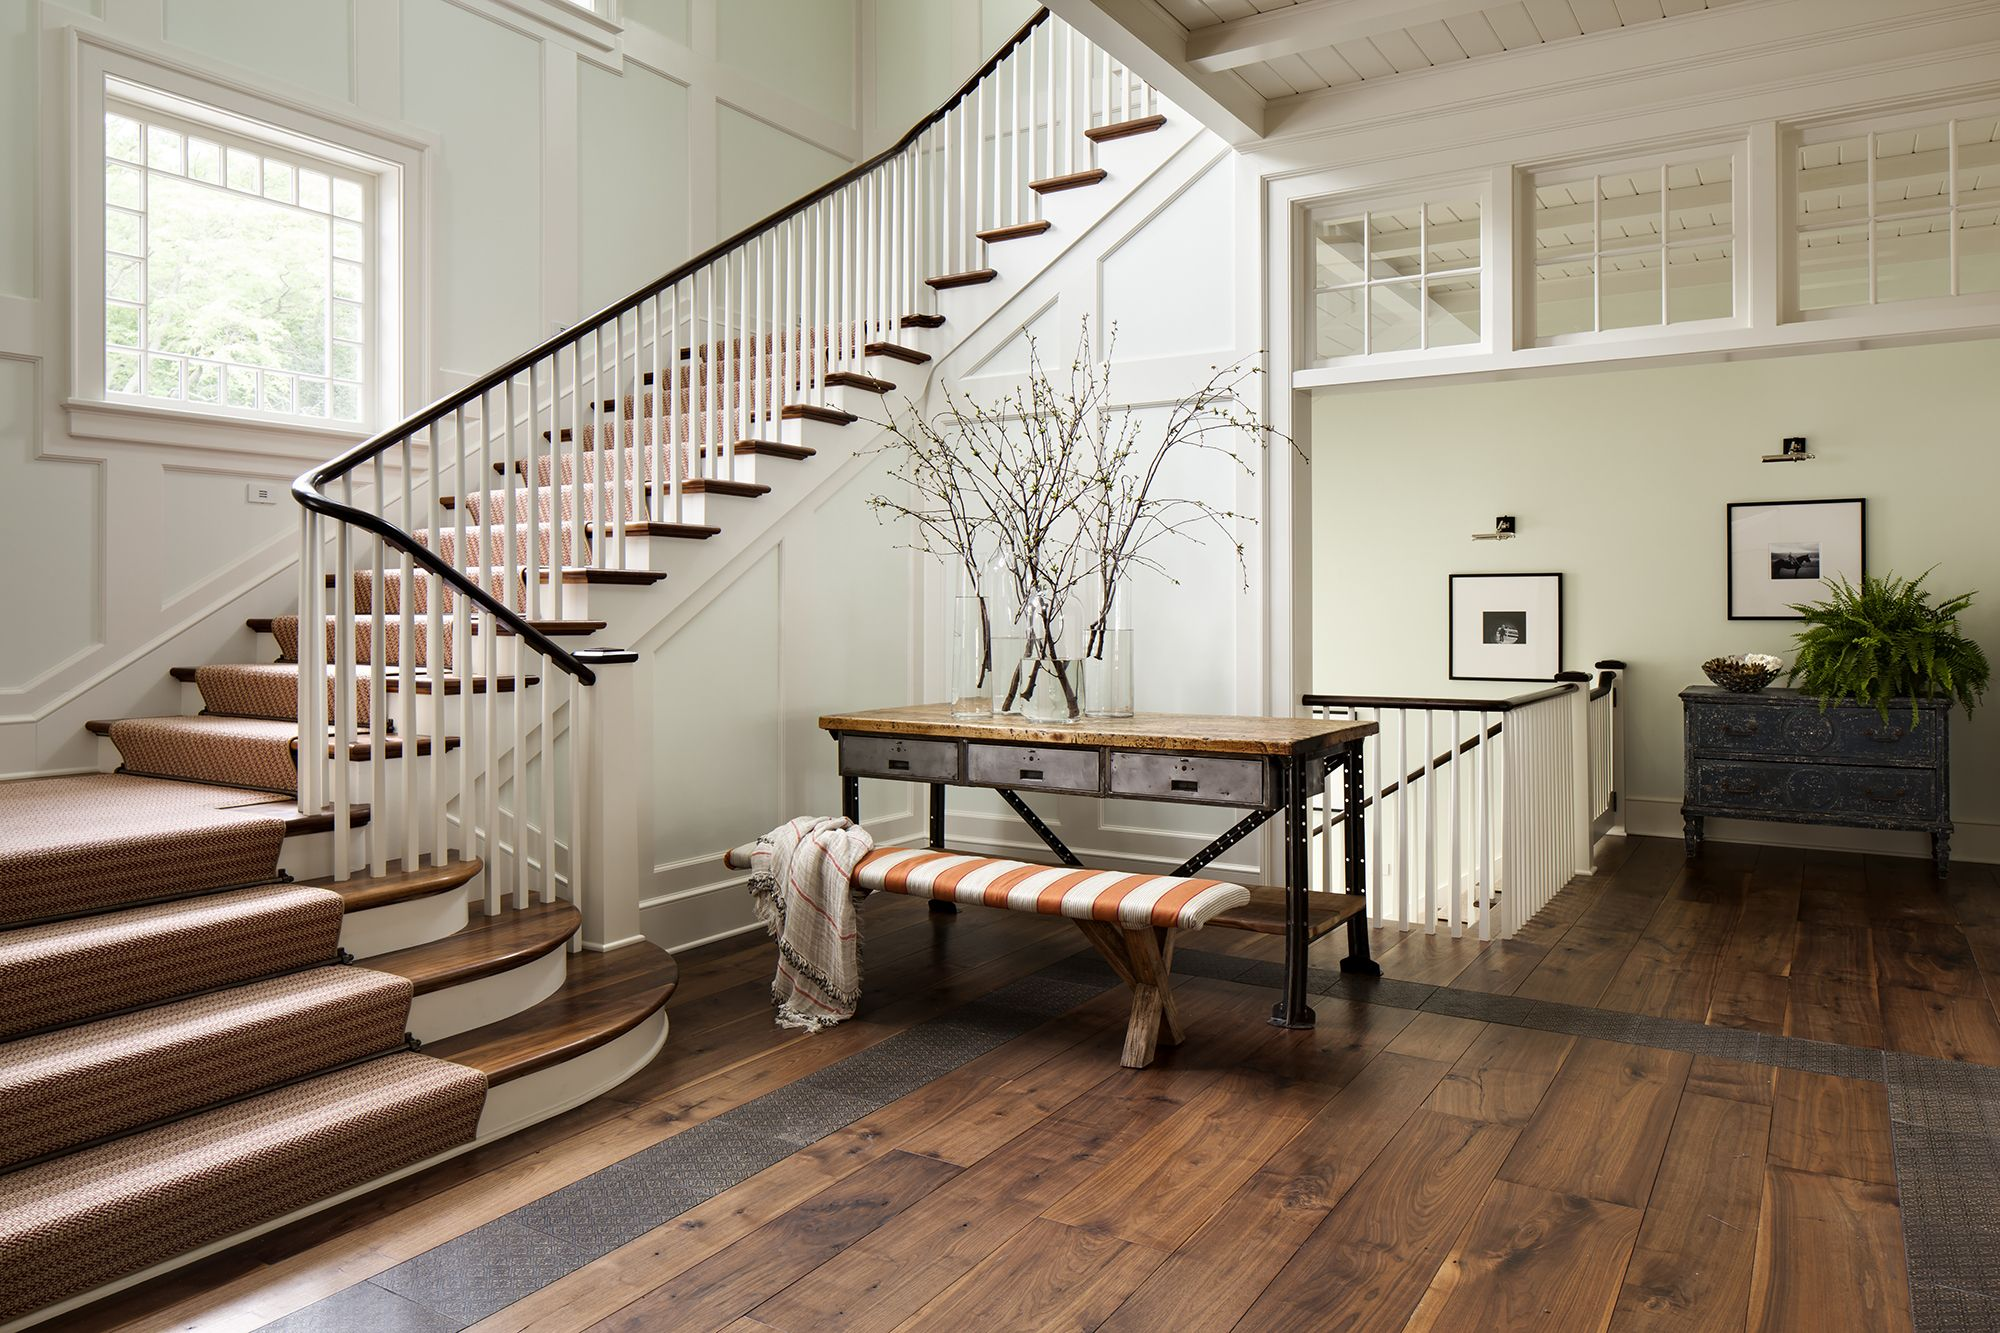 27 Stylish Staircase Decorating Ideas